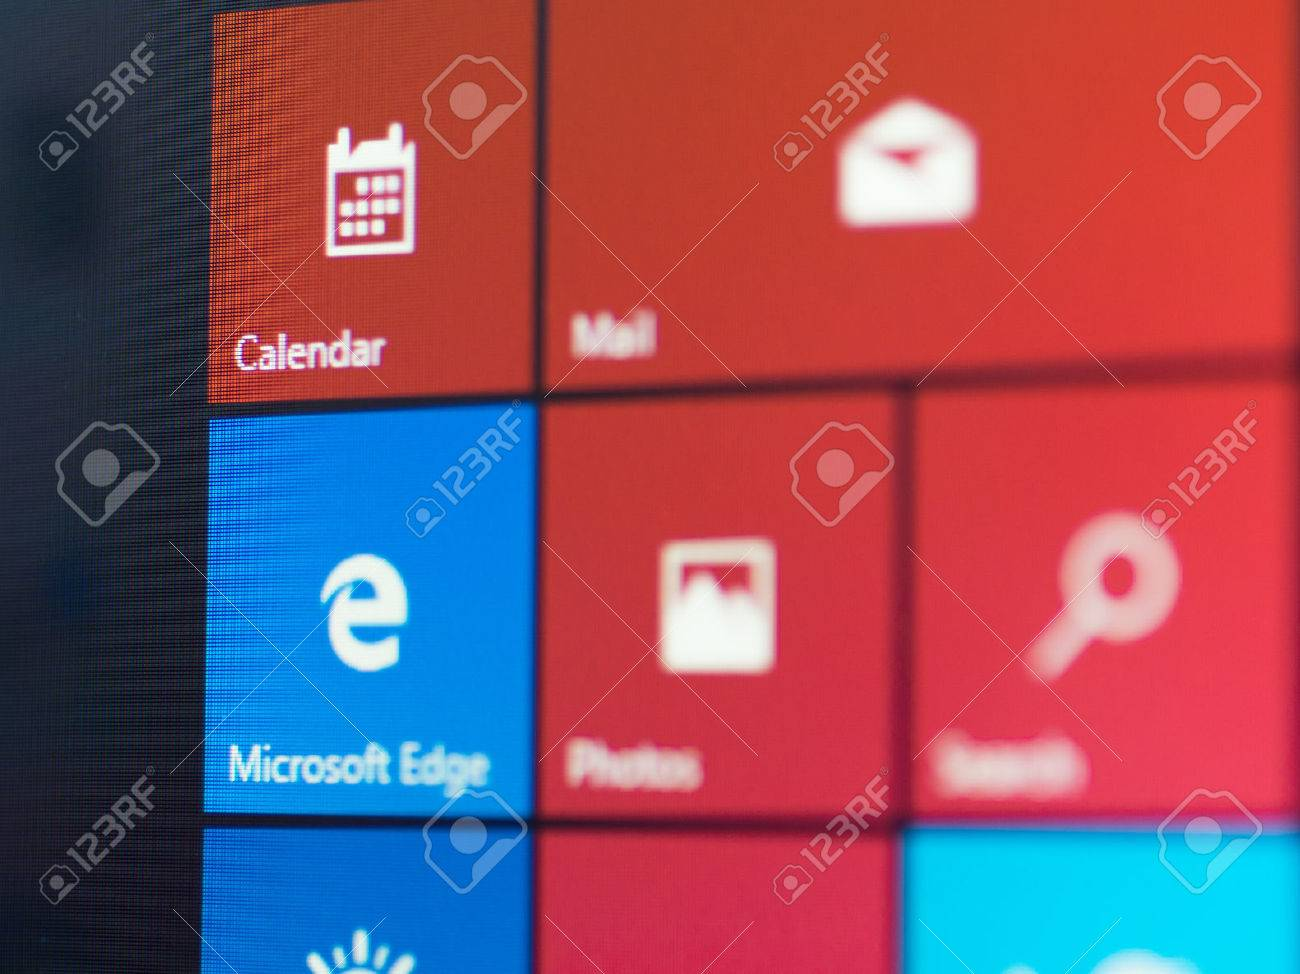 Bangkok, Thailand - August 16, 2015; Menu screen of new Windows 10 focussed on Mirosoft Edge icon. The browser is bundle with new version of Windows. It starting July 29, 2015. - 44823368